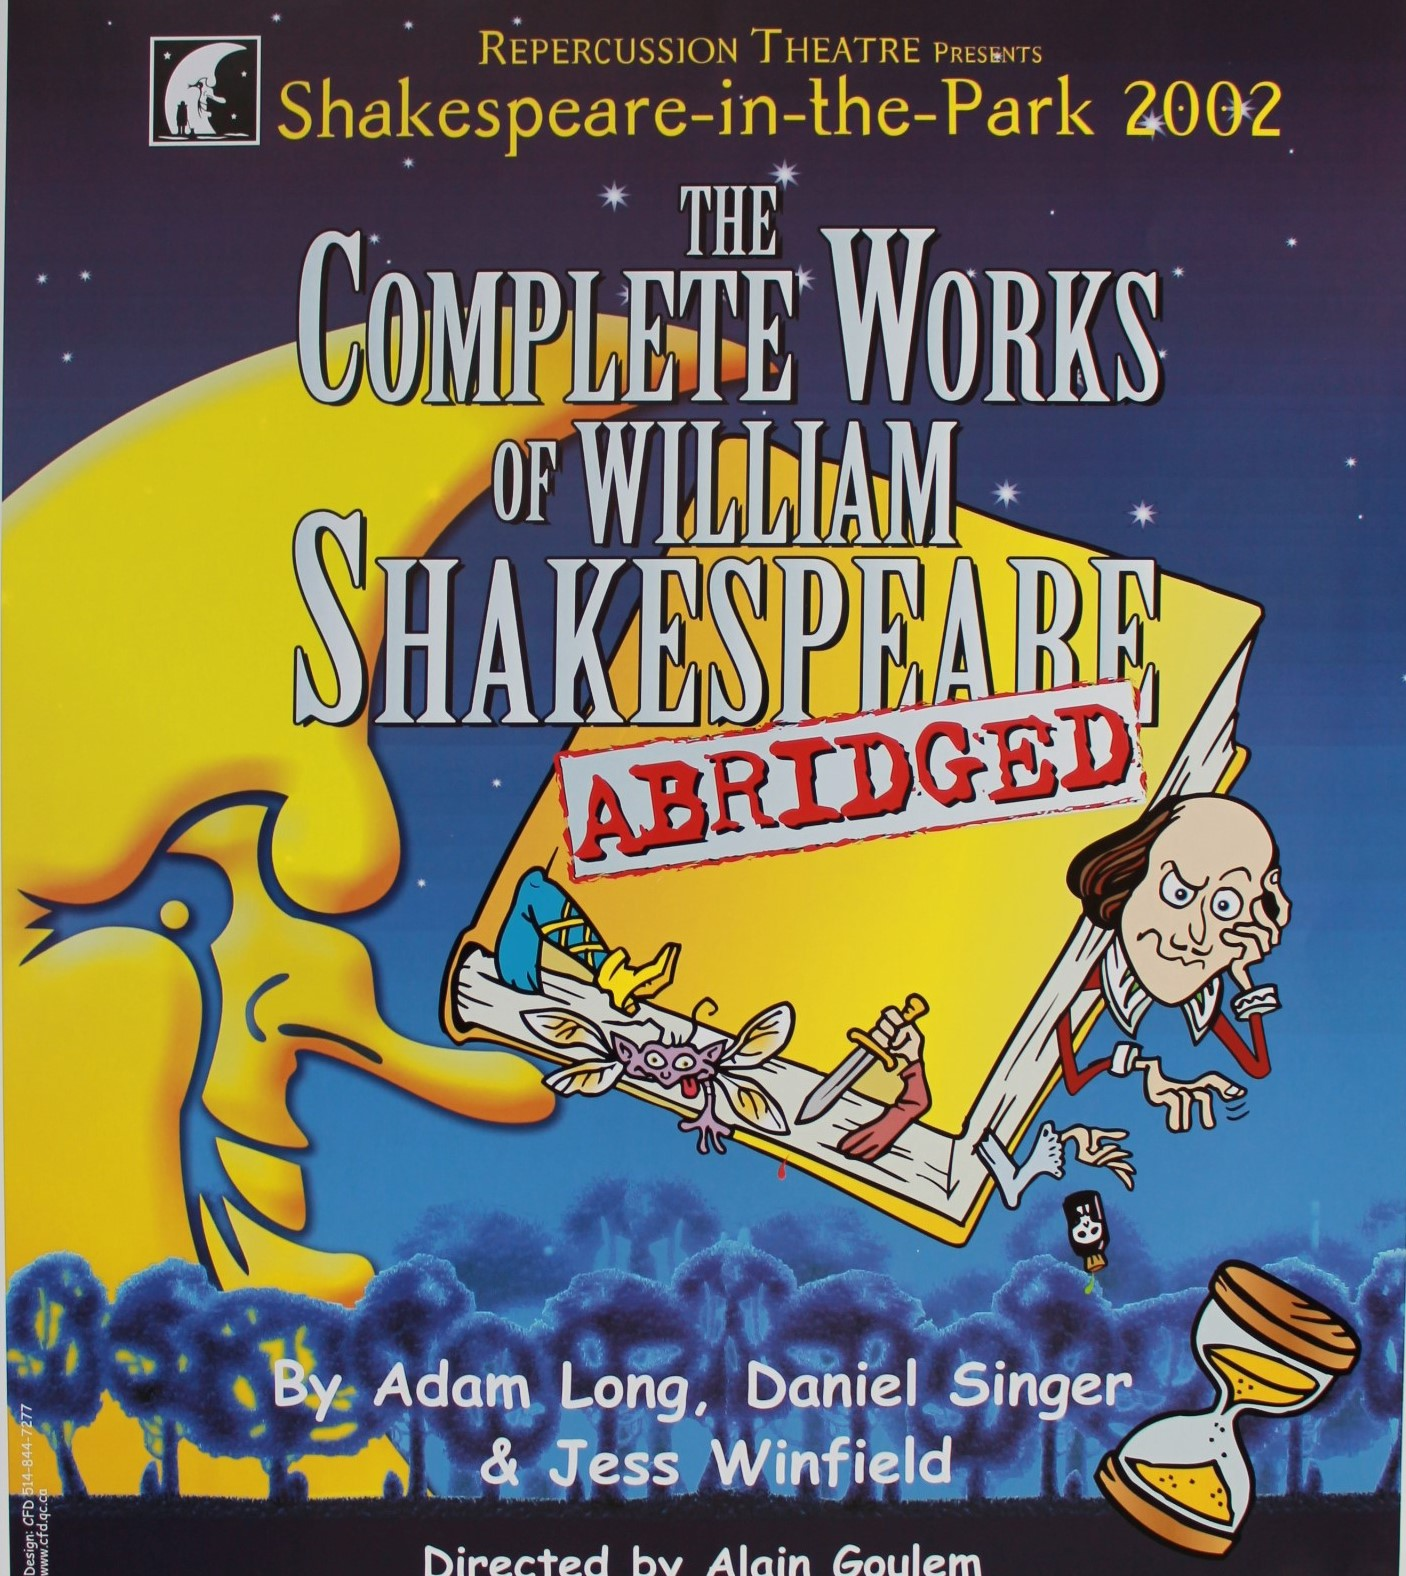 The Complete Works of William Shakespeare (Abridged) Poster 2002